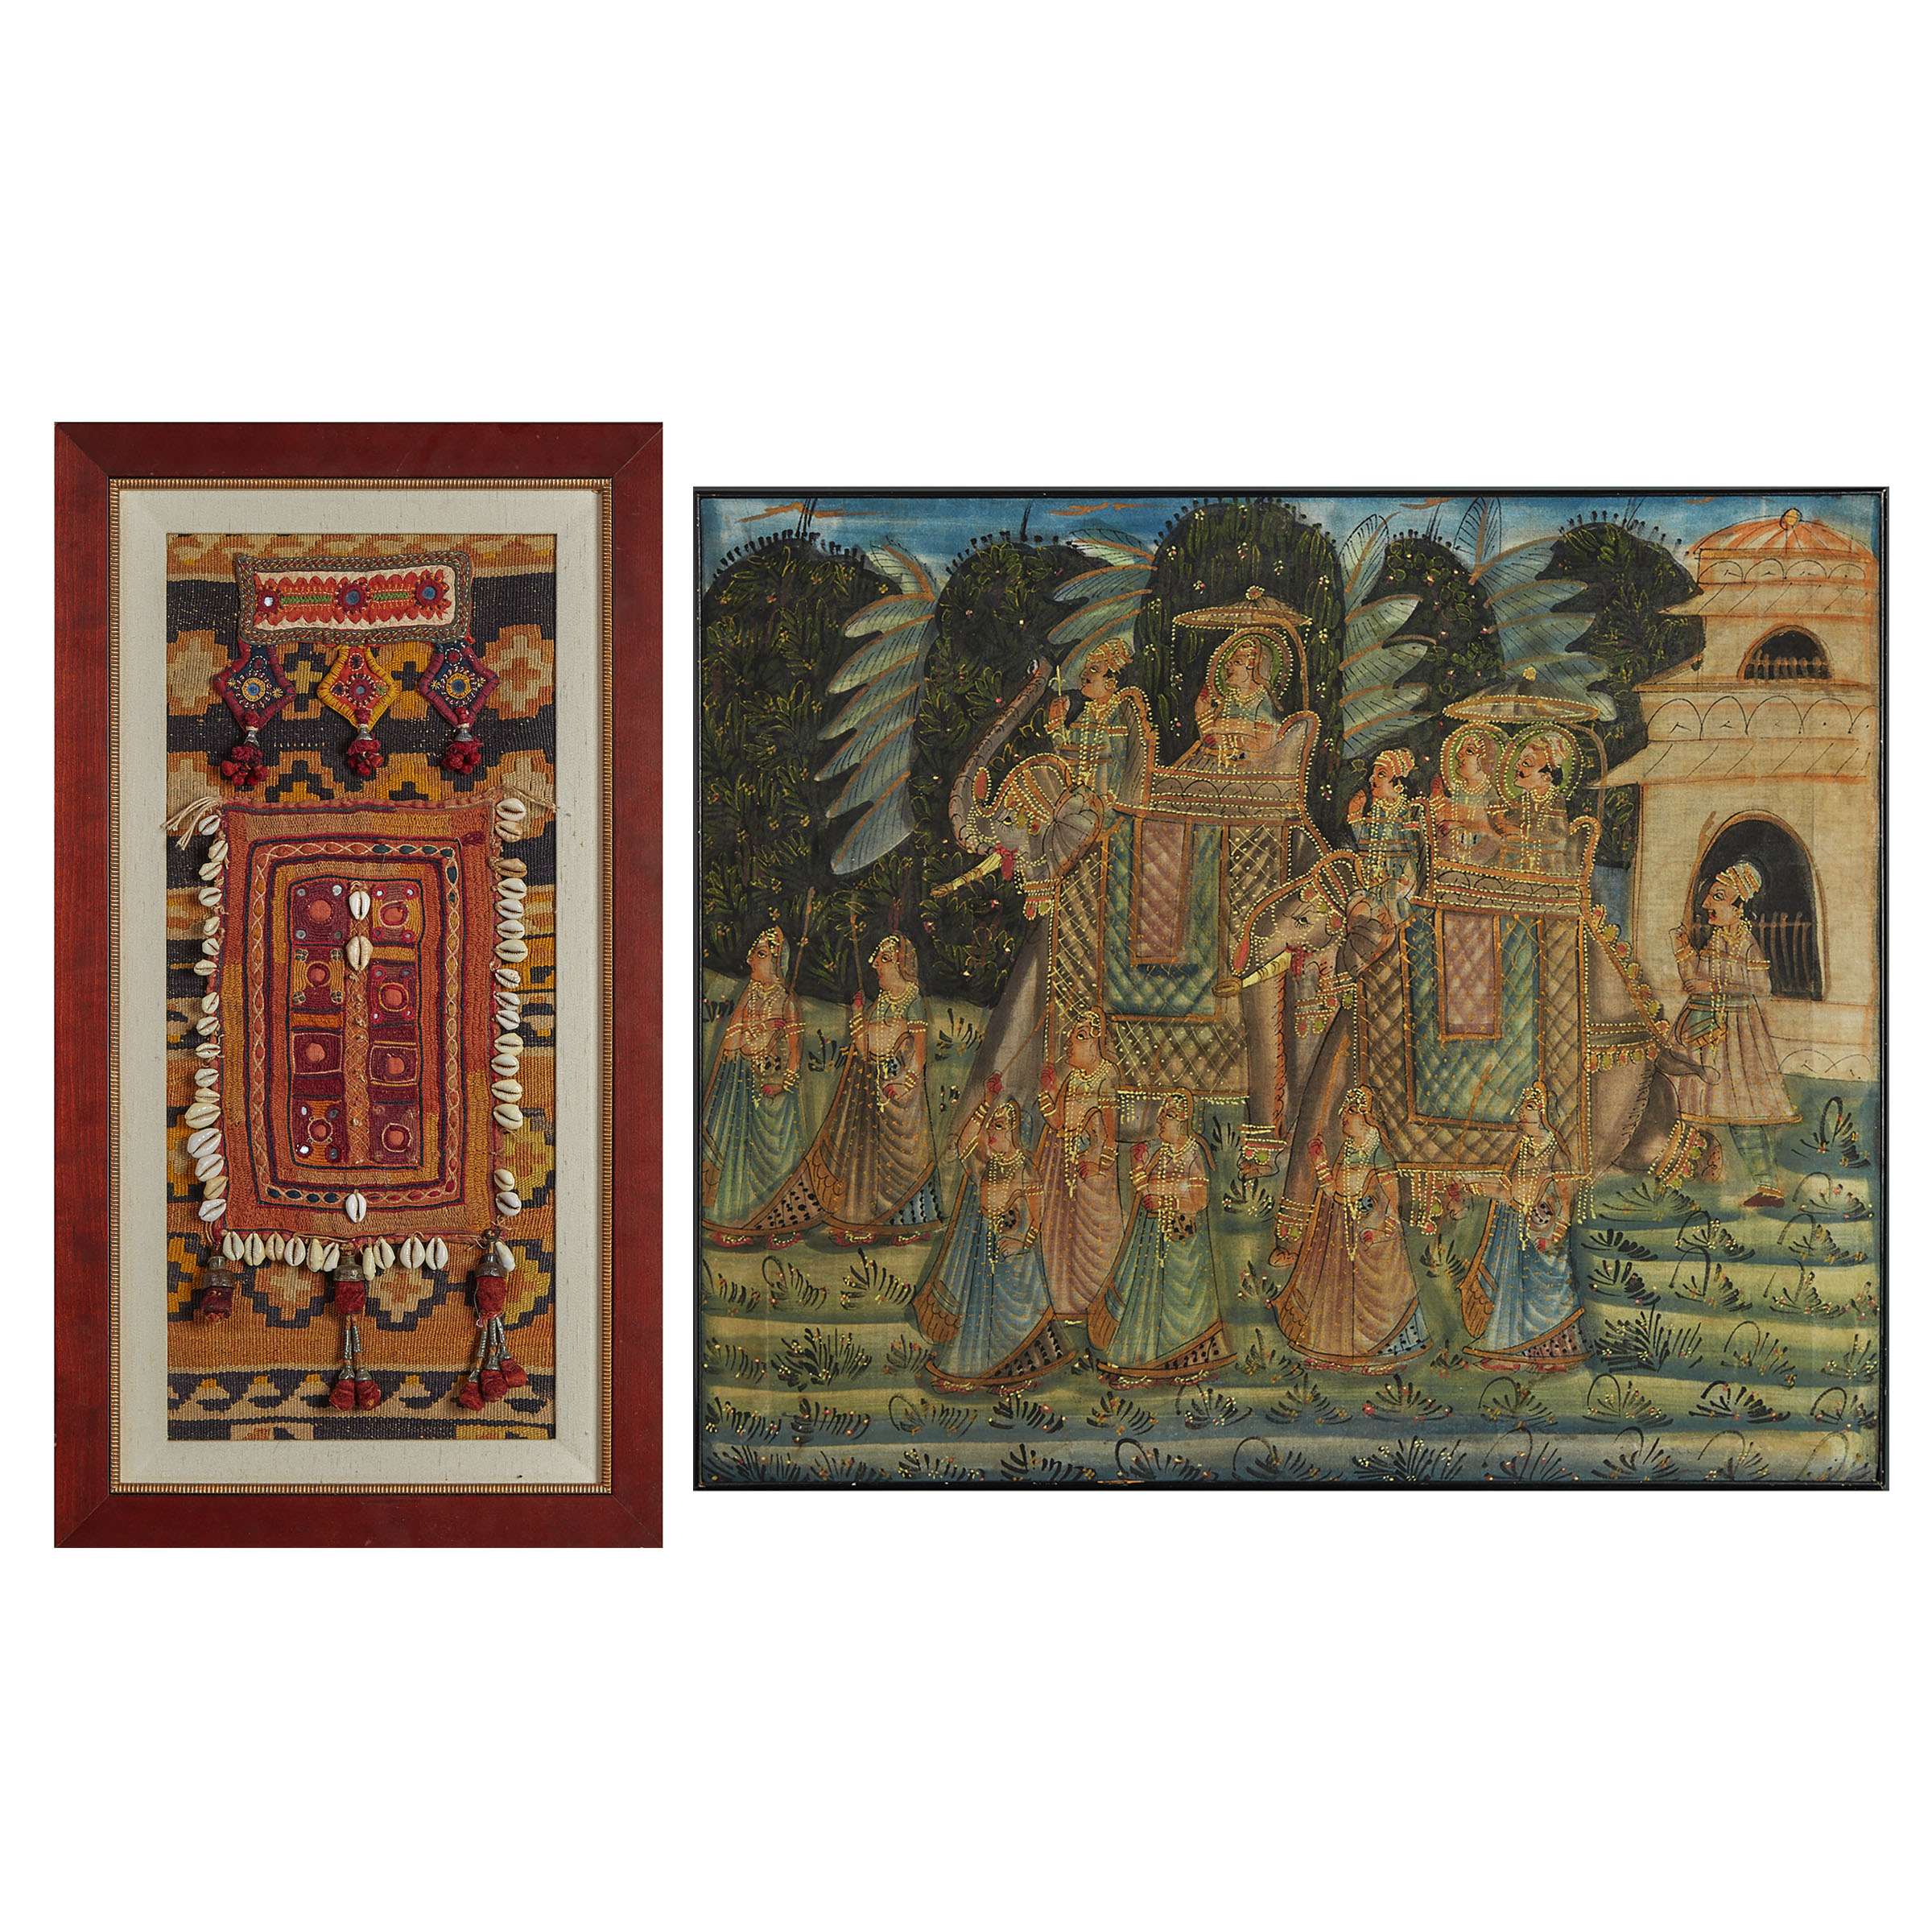 Two Framed Indian Textiles